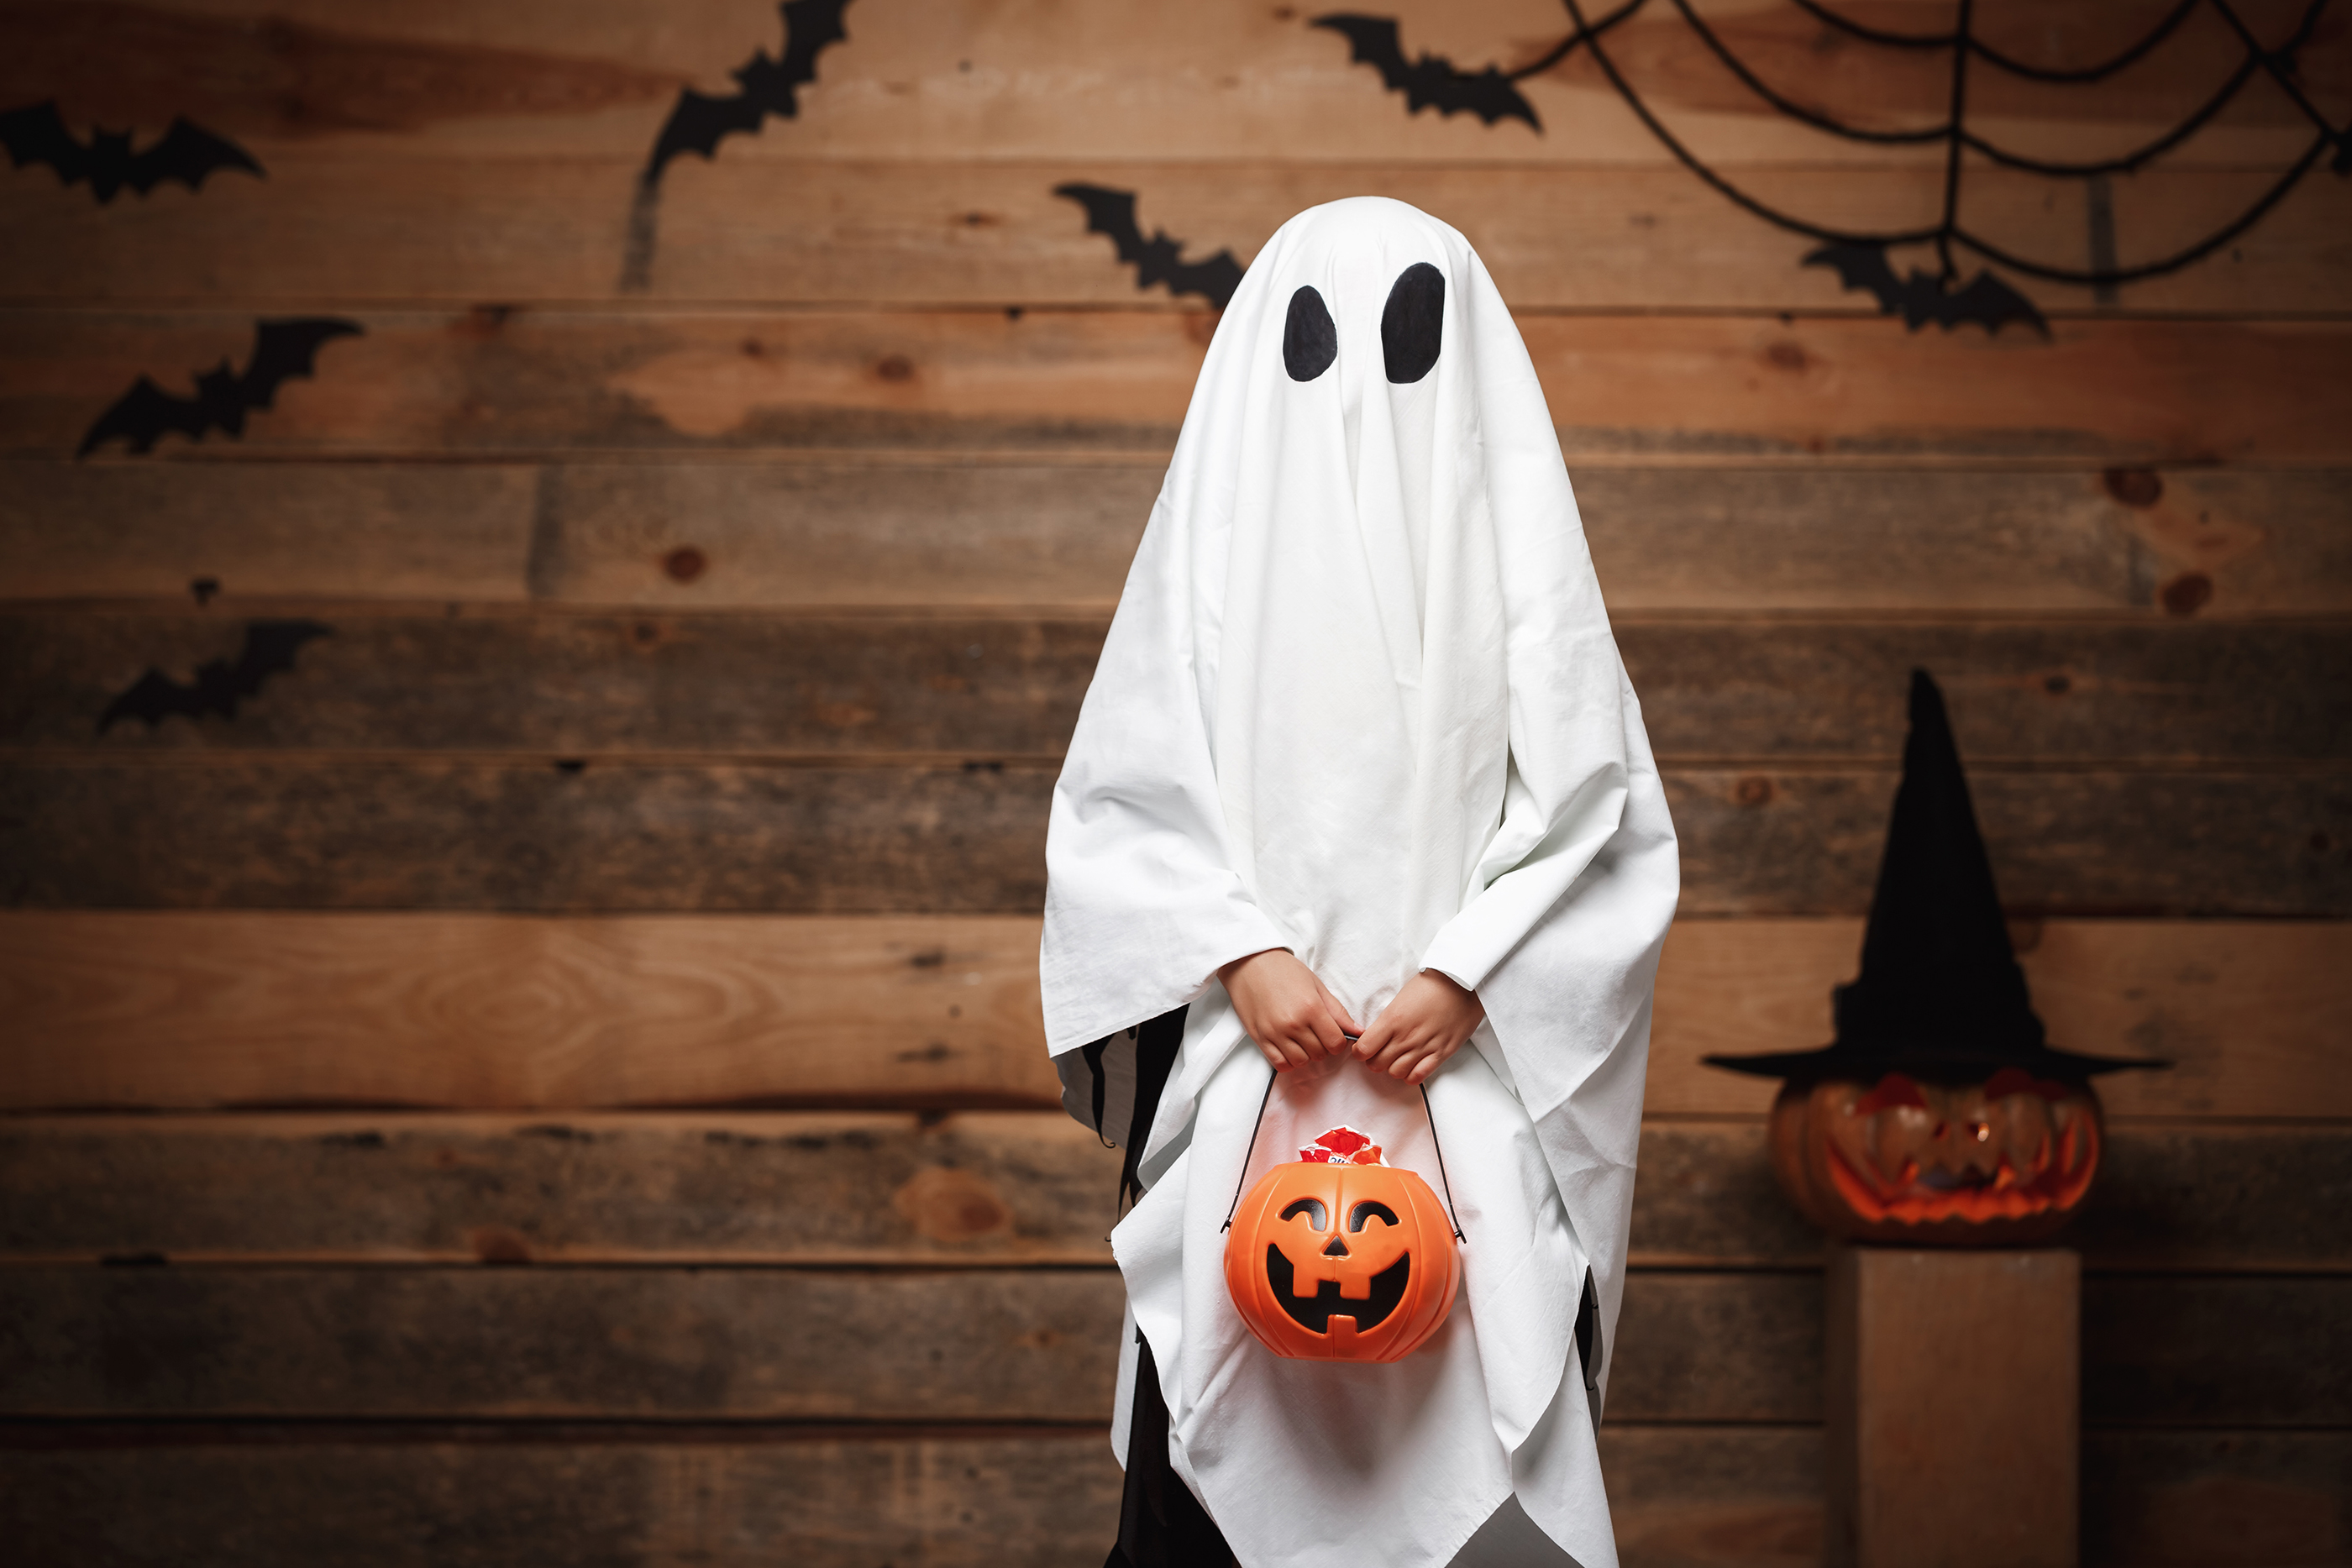 Rutgers Halloween Events 2020 How to Have a Safe Halloween | Rutgers University